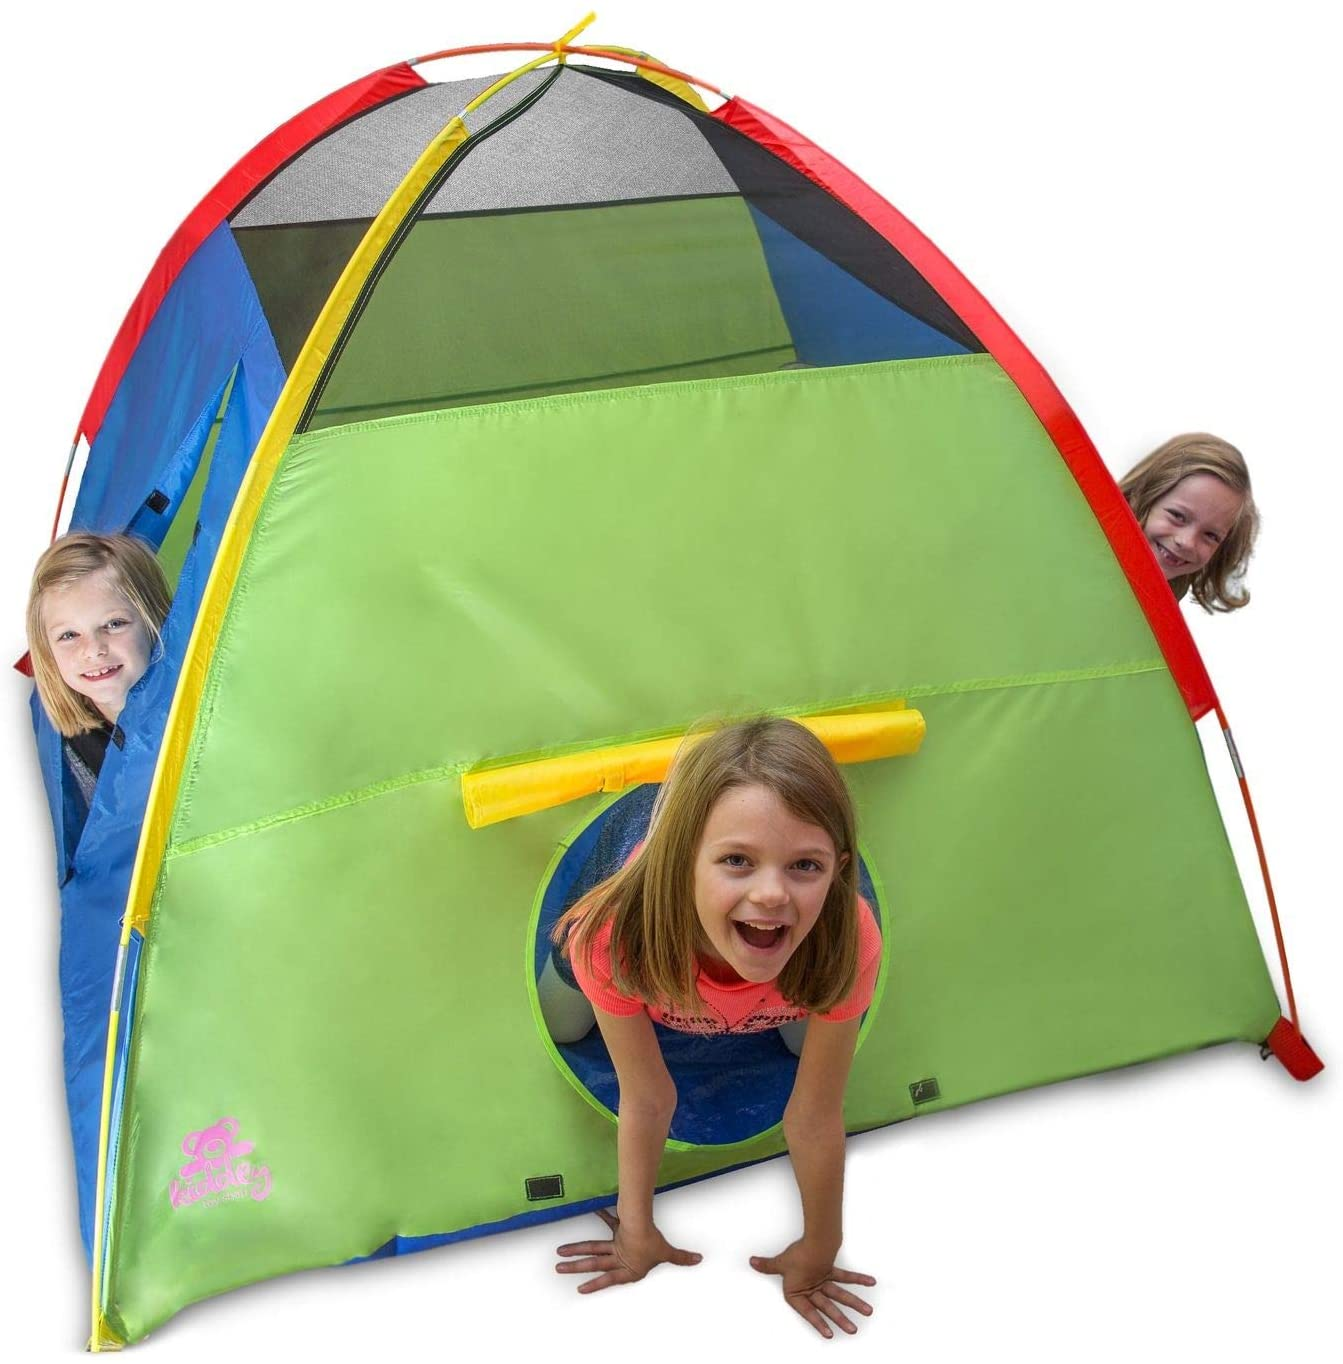 Kiddey Kids Play Tent & Playhouse